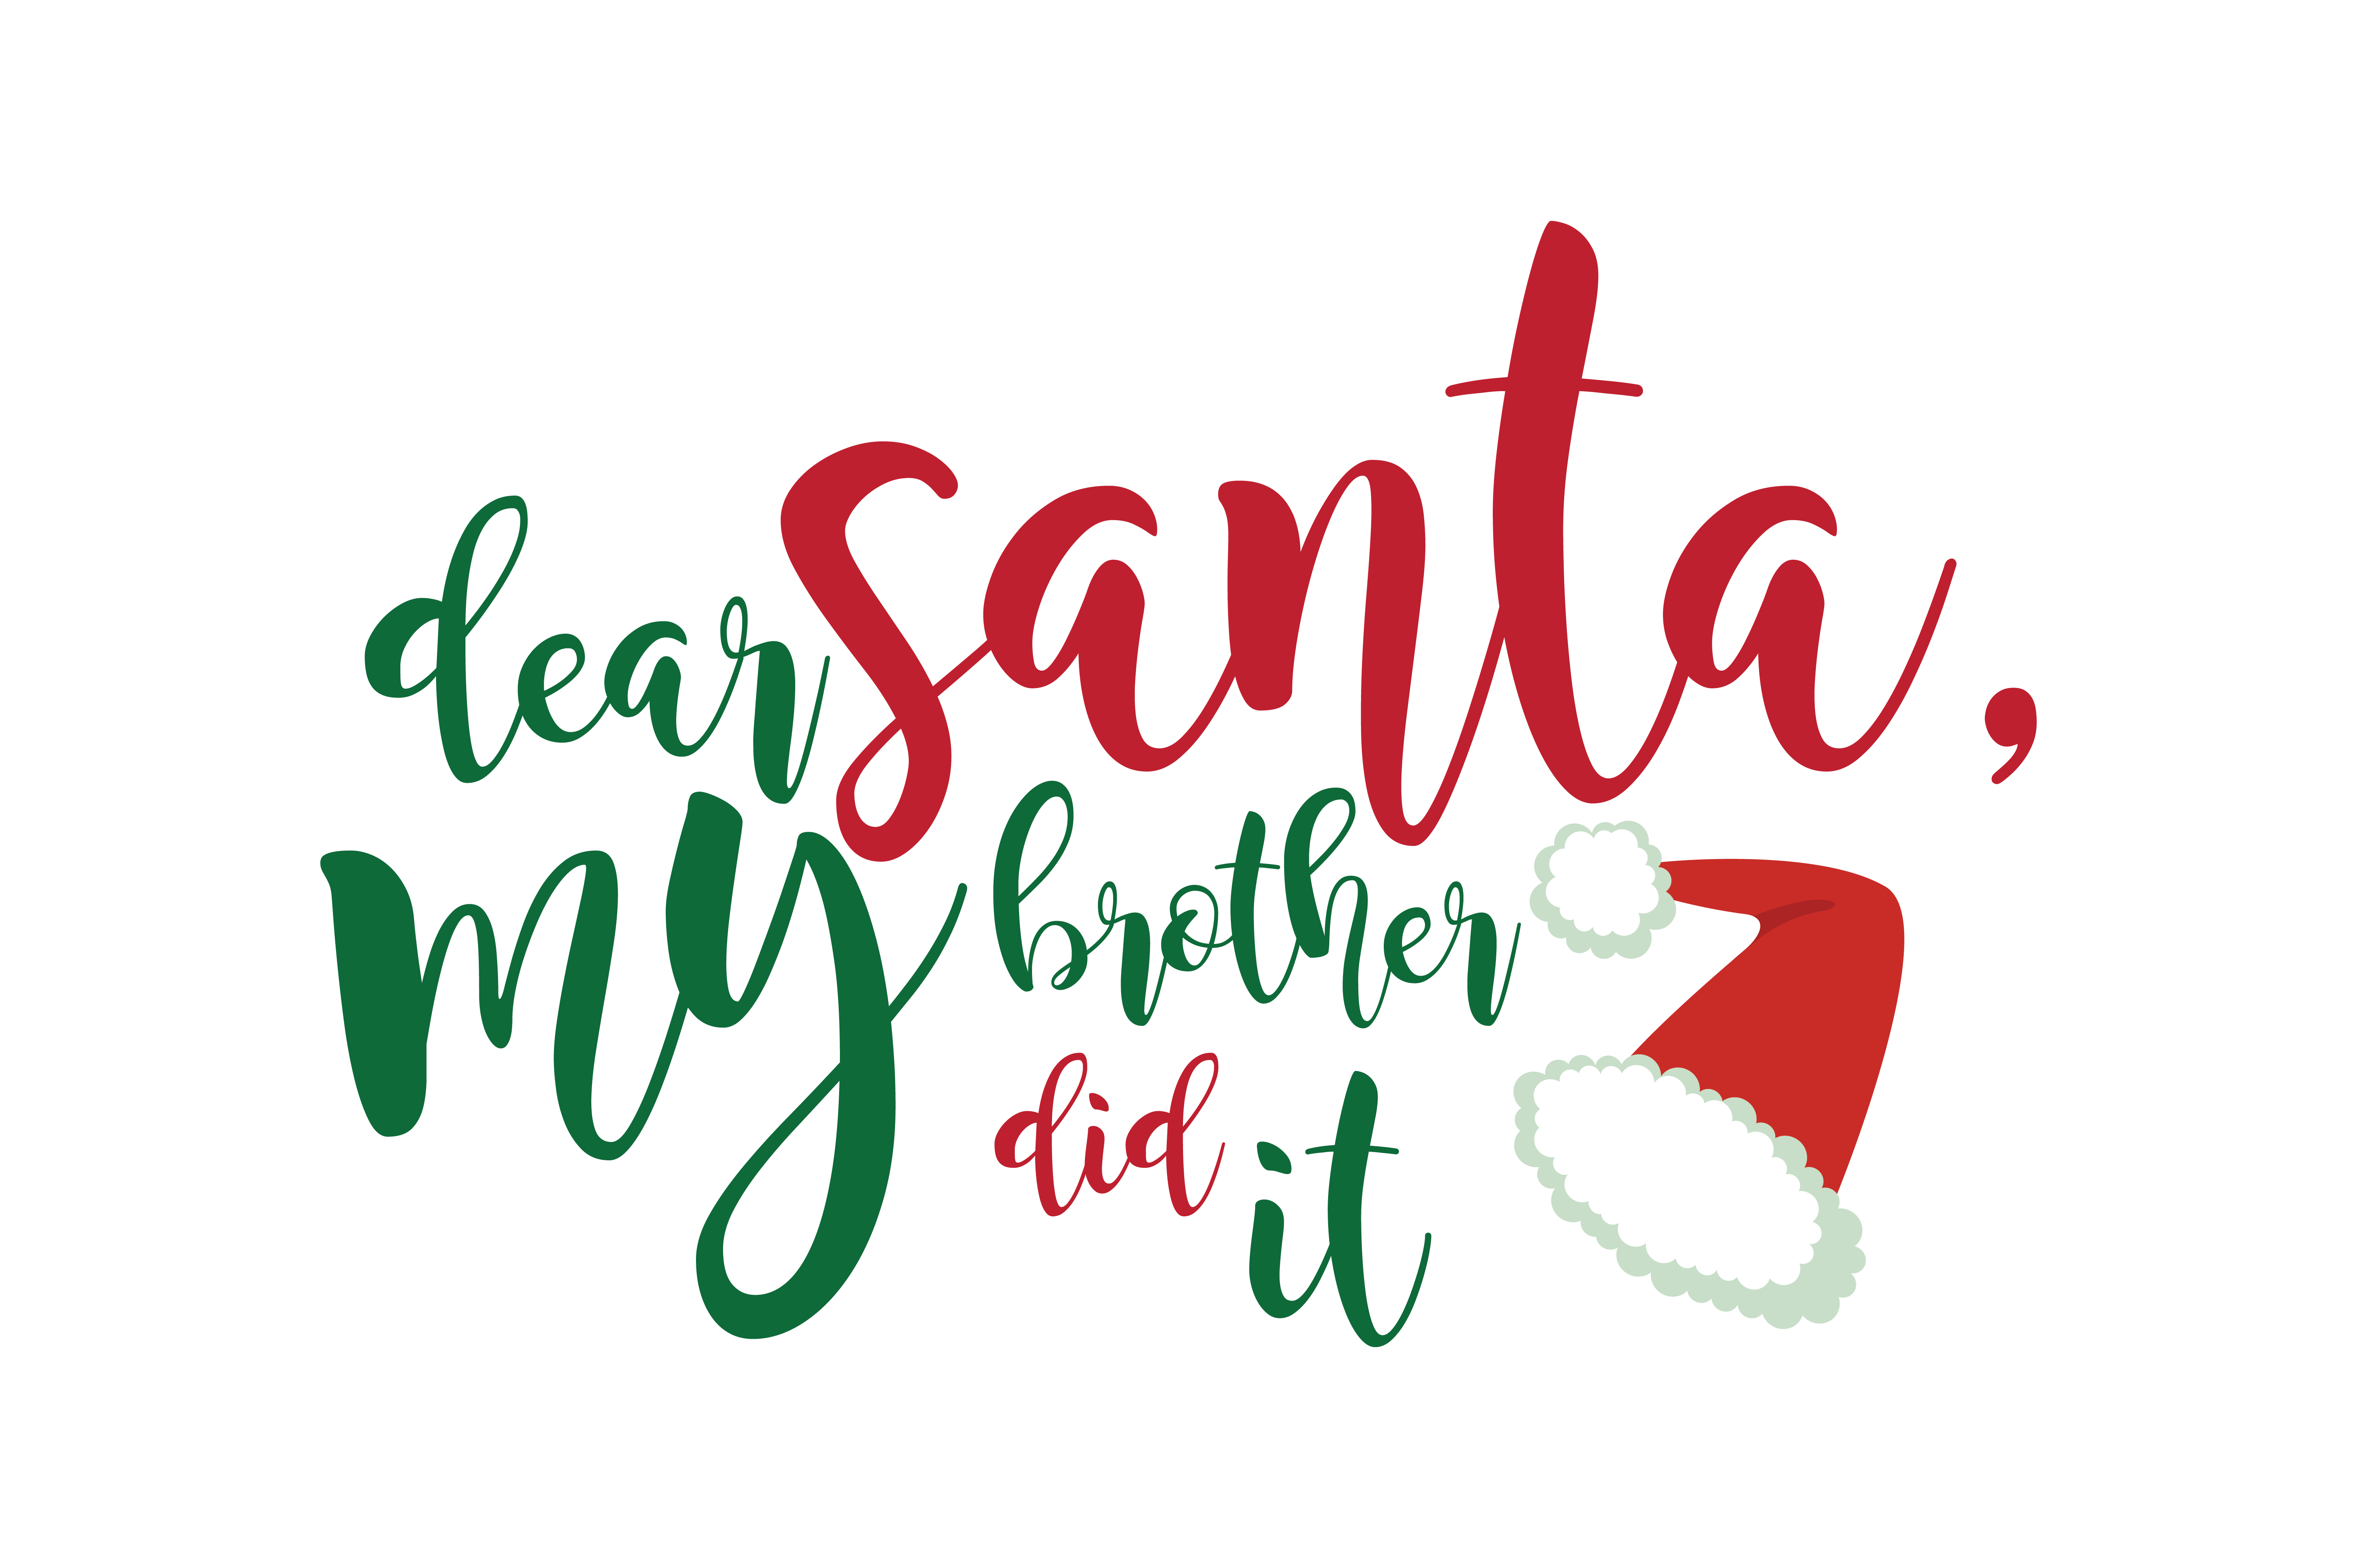 Download Free Dear Santa My Brother Did It Svg Cut Graphic By Thelucky for Cricut Explore, Silhouette and other cutting machines.